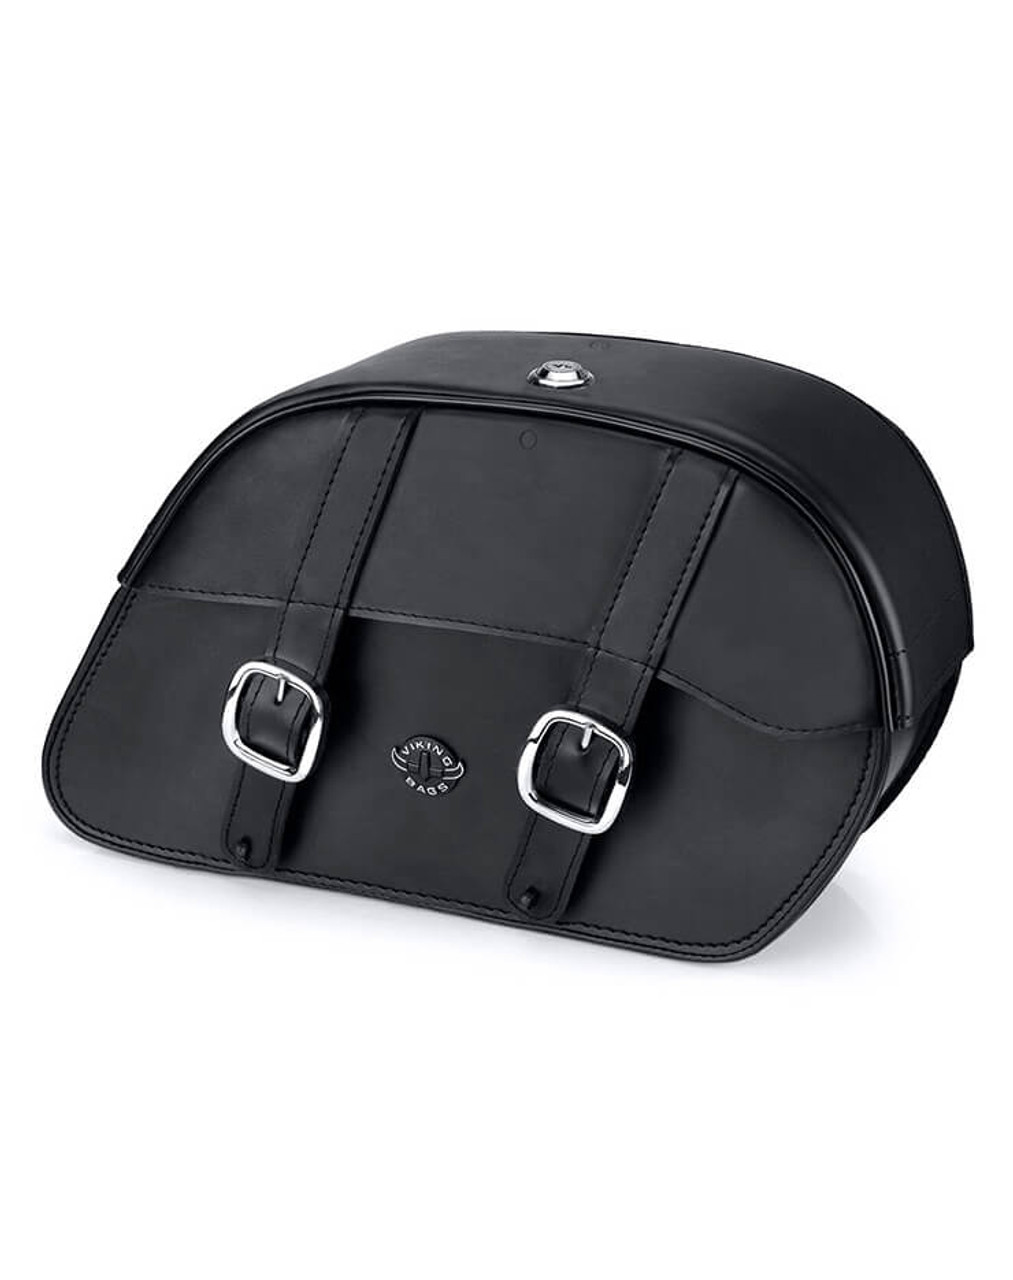 Viking Shock Cutout Slanted Large Motorcycle Saddlebags For Harley Dyna Low Rider FXDL Main Bag View